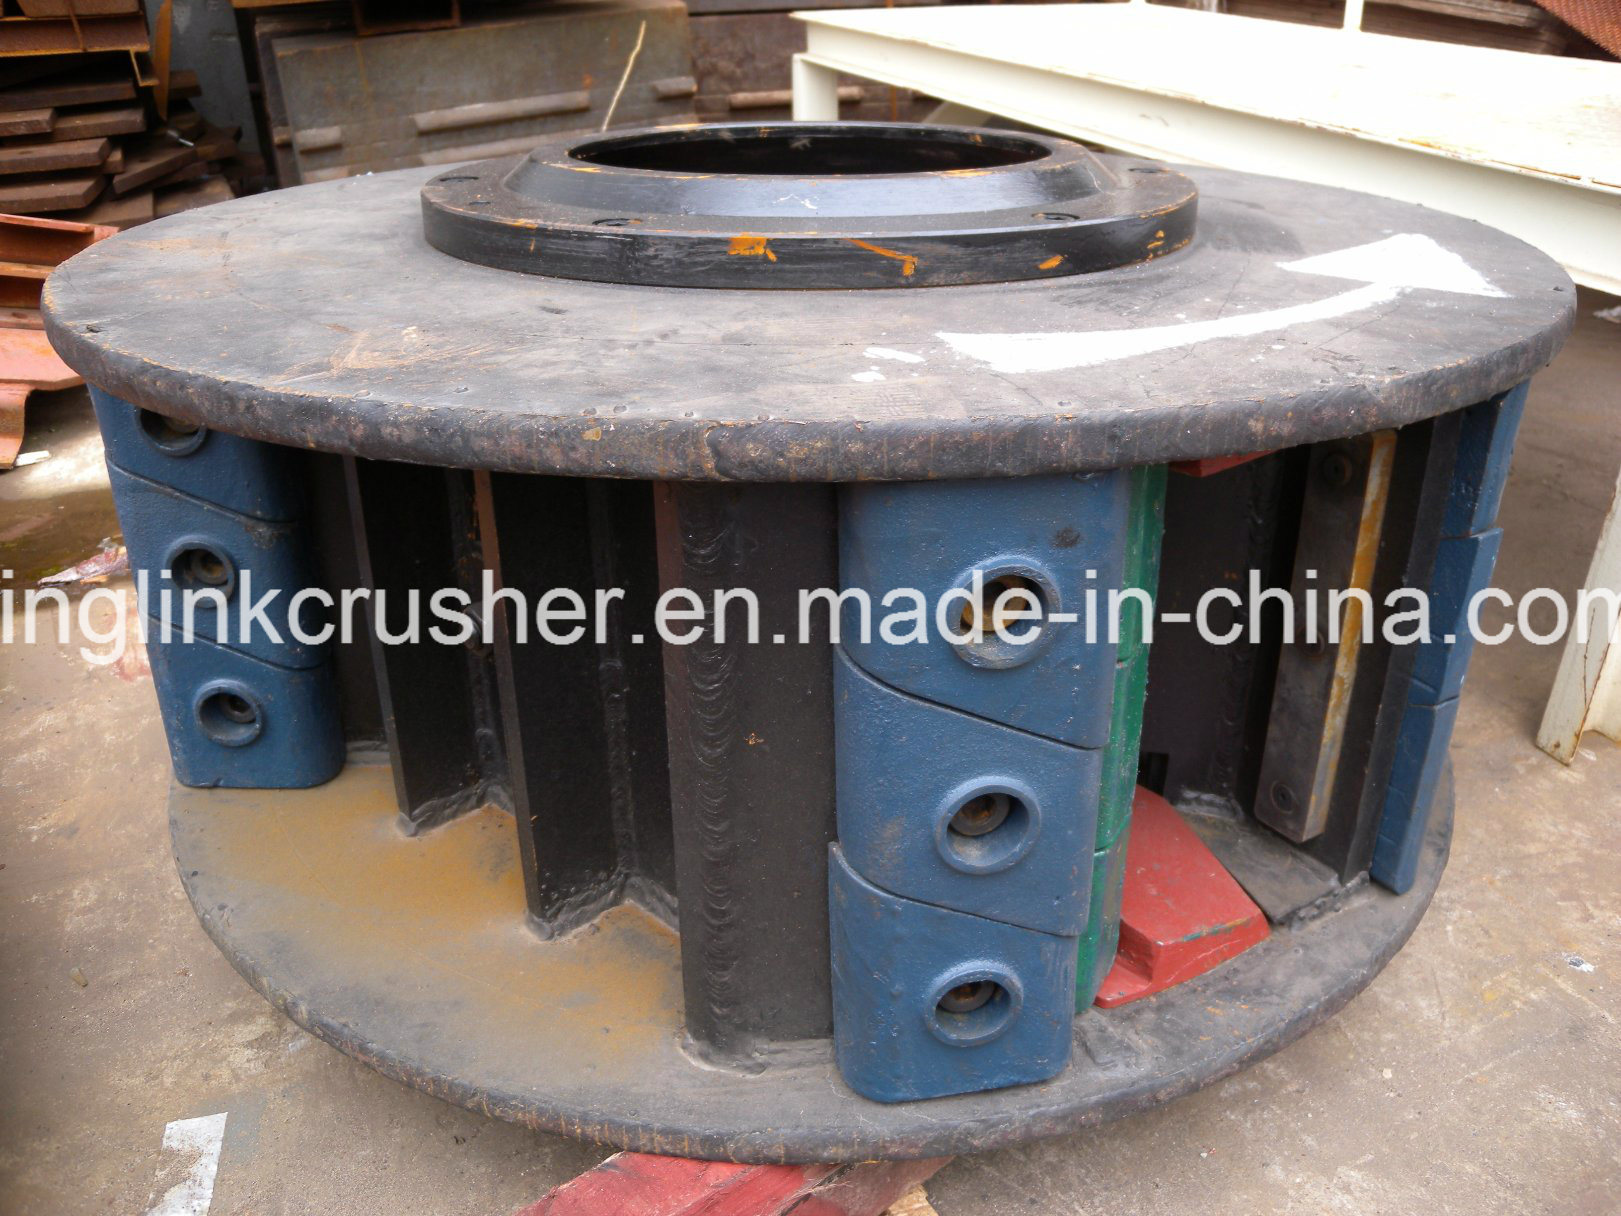 Riverstone/Pebble/Cobble Sand Maker, Barmac Type Sand Making Machine